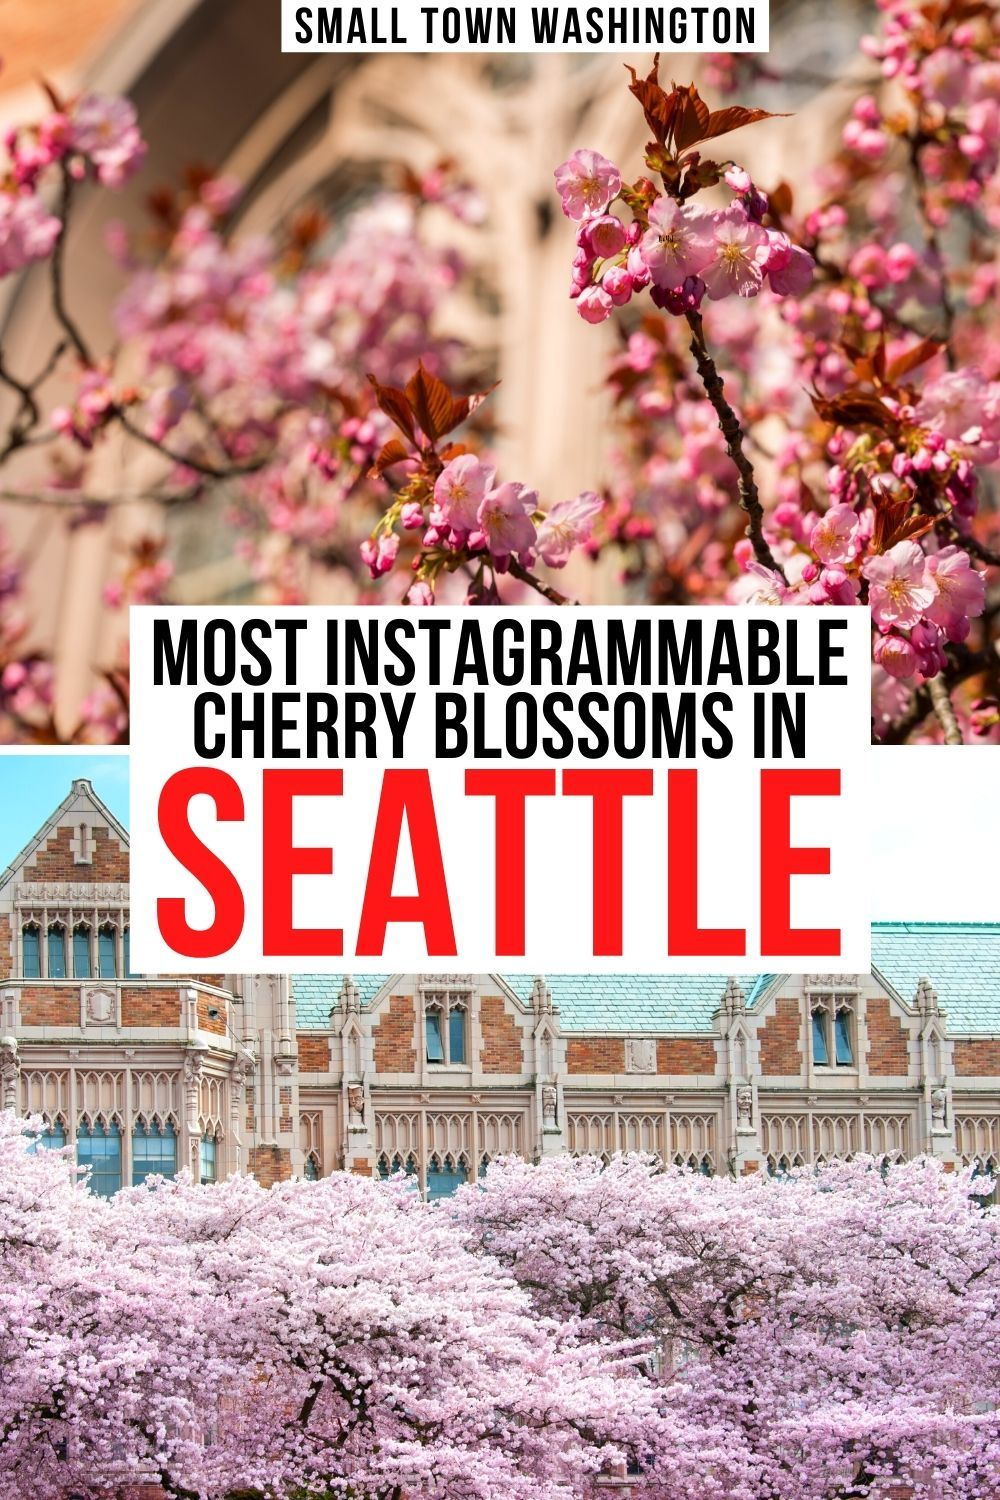 9 Best Places To Find Cherry Blossoms In Seattle Small Town Washington In 2021 United States Travel Destinations Usa Travel Destinations Pacific Northwest Travel